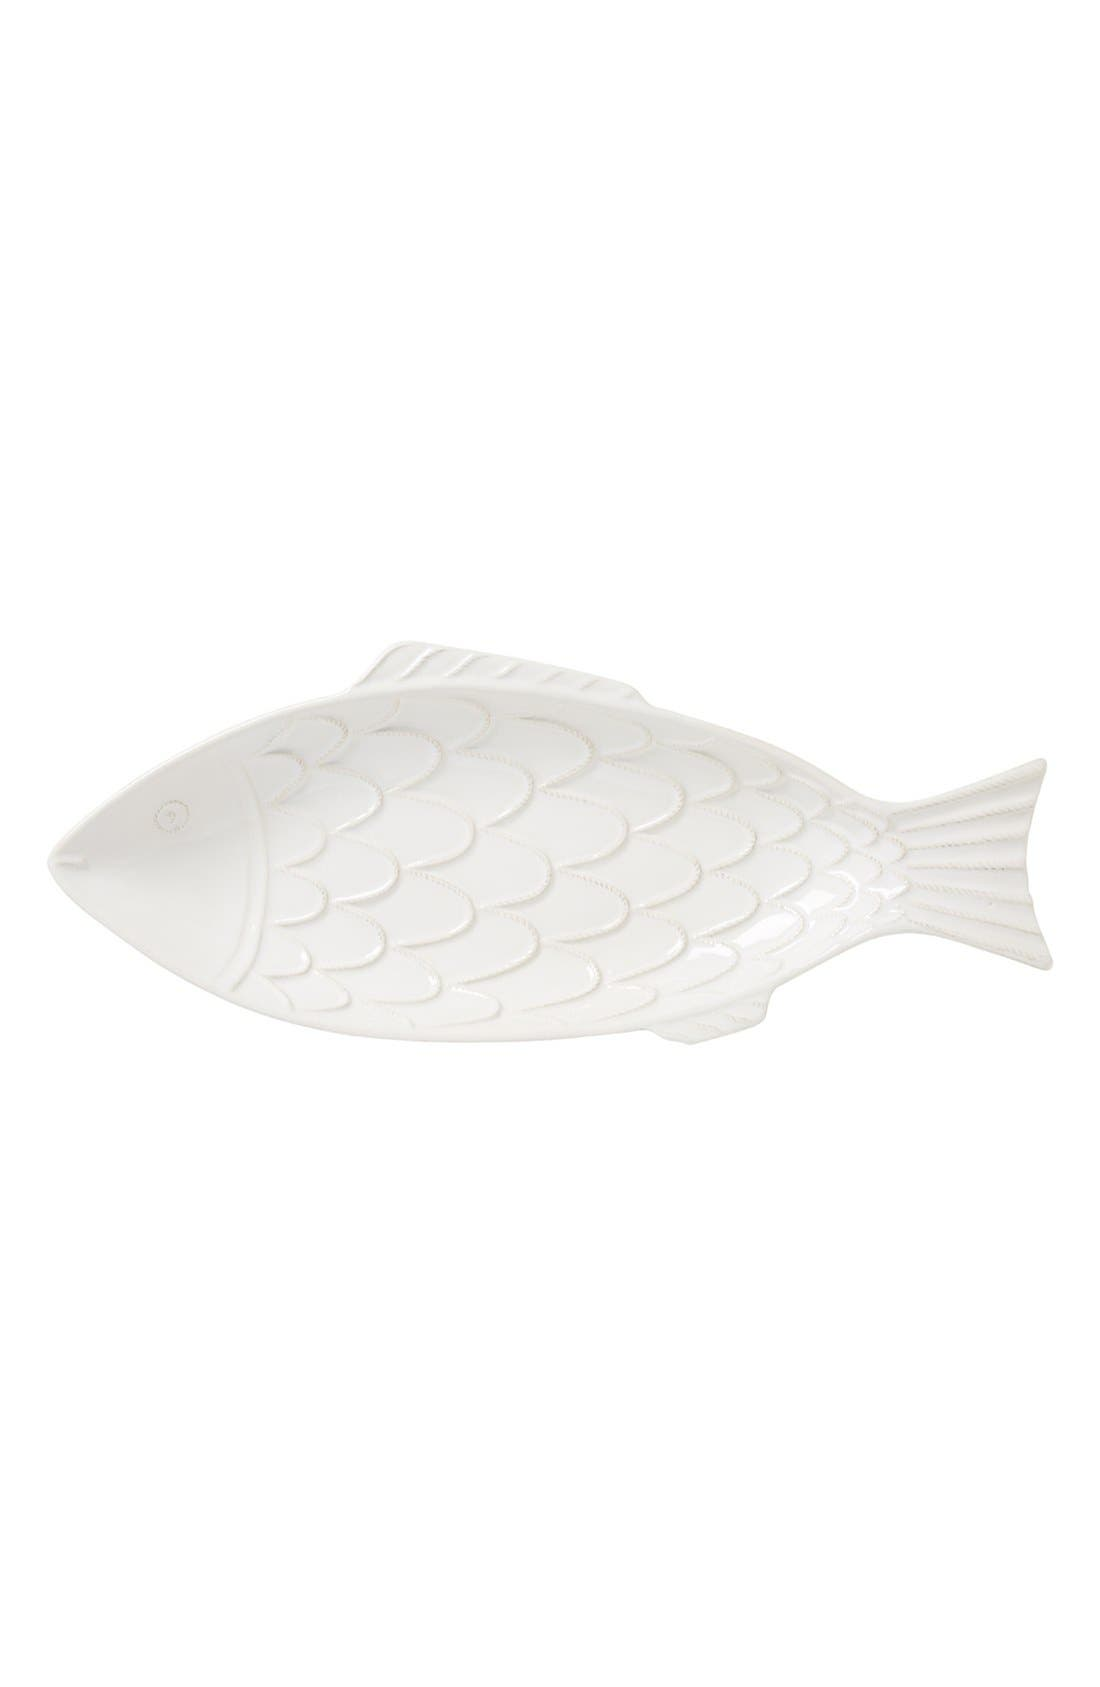 'Berry and Thread' Ceramic Fish Platter,                             Main thumbnail 1, color,                             WHITE